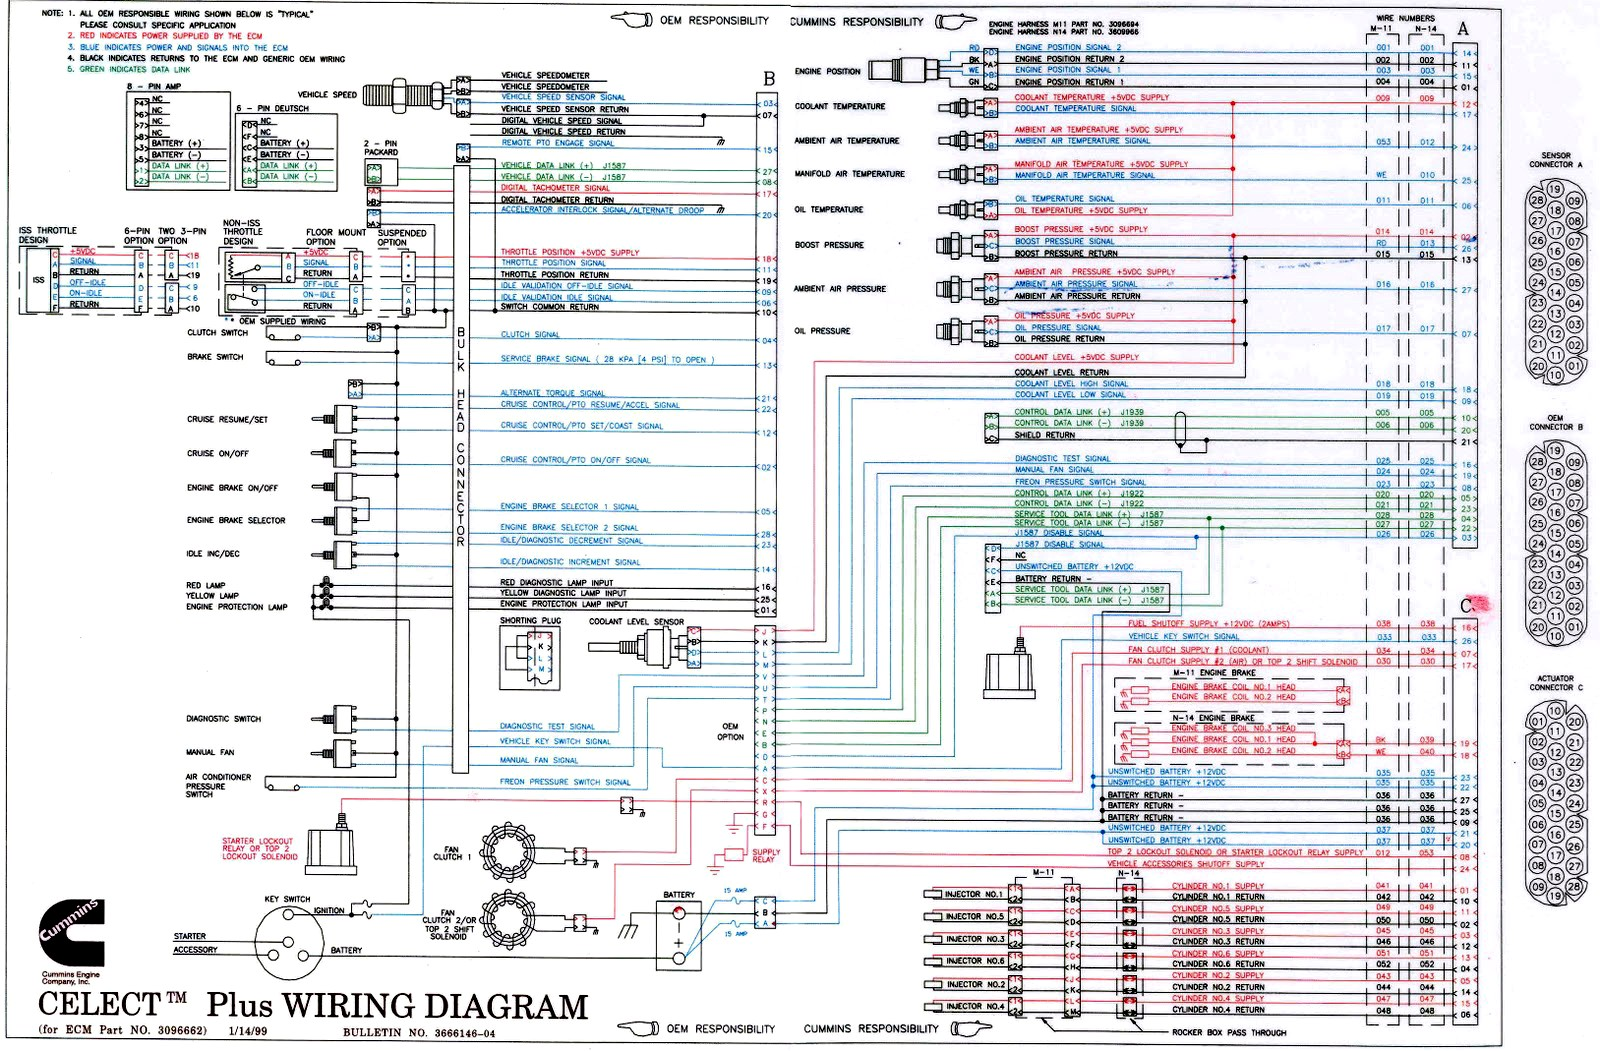 Celect+Plus+Wiring+Diagram+Cummins wiring diagram 1991 kenworth t600 readingrat net kenworth wiring schematics wiring diagrams at eliteediting.co